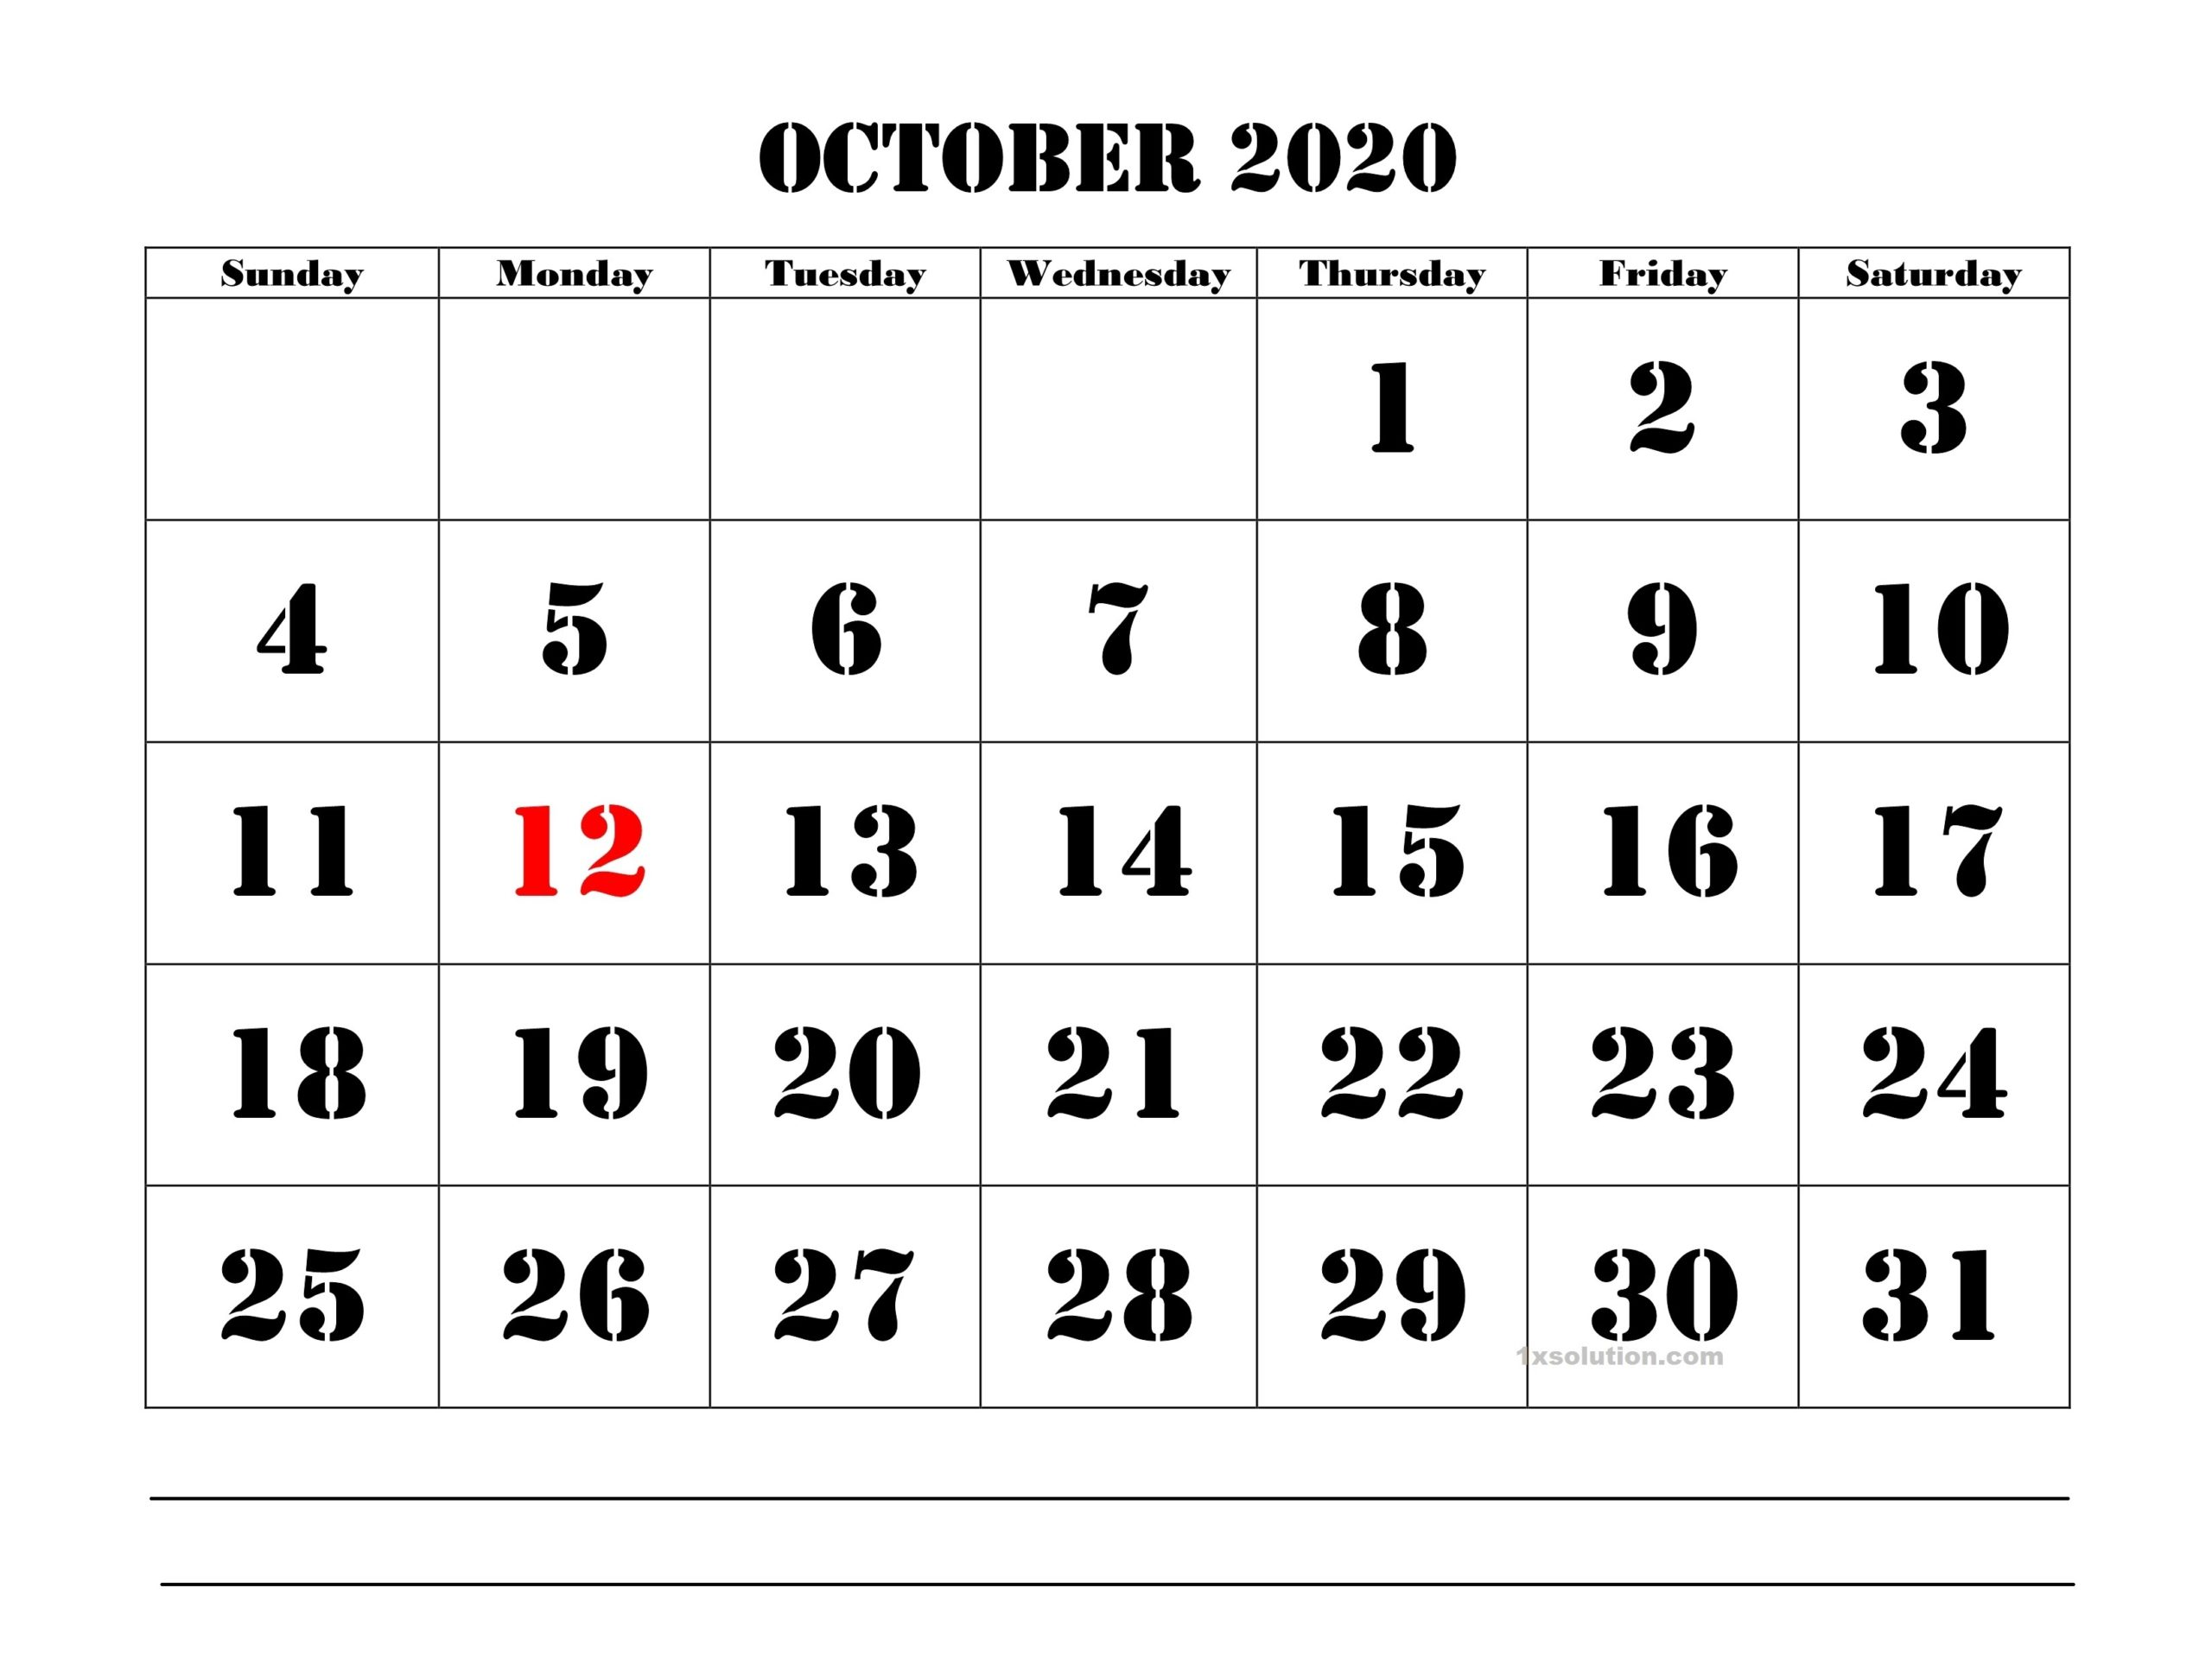 October 2020 Calendar Excel With Holidays